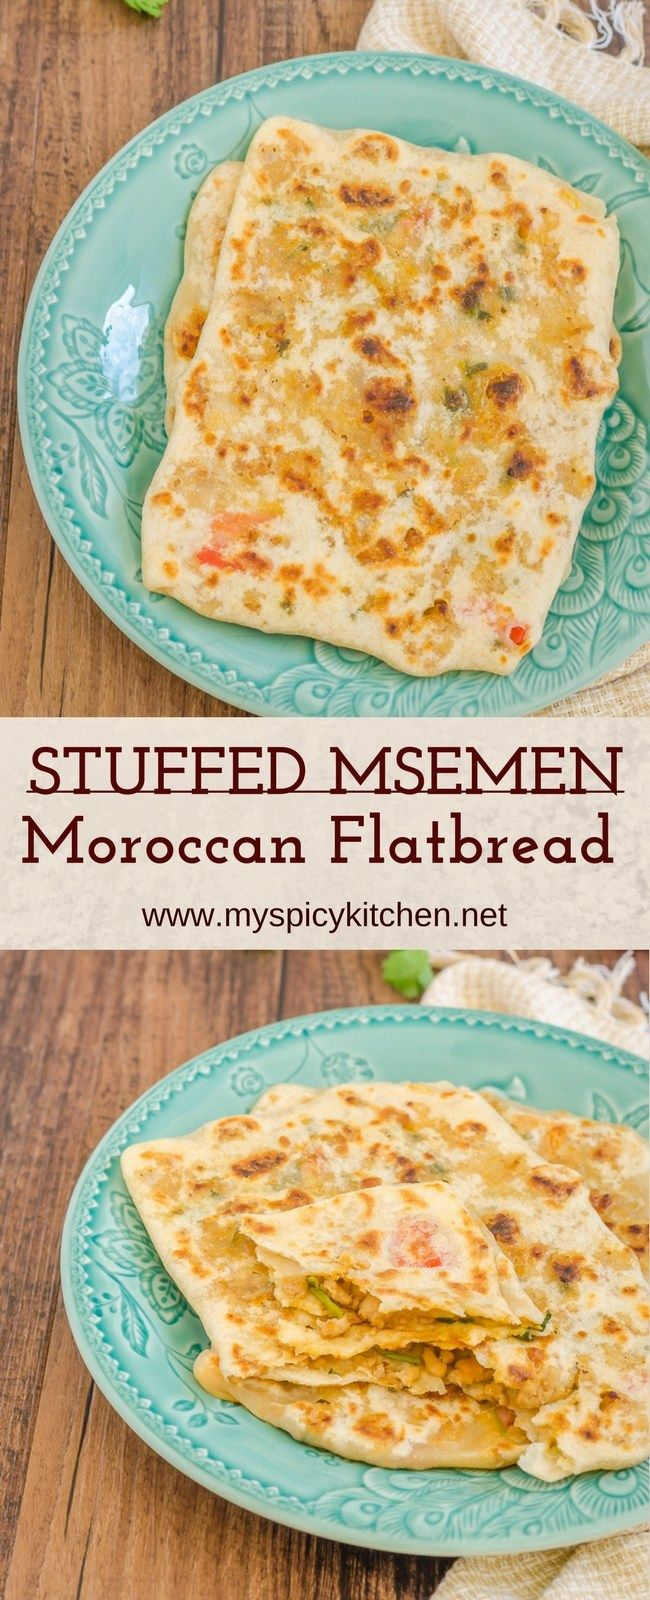 Ground chicken stuffed msemen is a Moroccan stuffed flatbread.  It is very soft and usually served for breakfast or for tea.  #StuffedFlatbread #MoroccanStuffedFlatbread #MoroccanFood